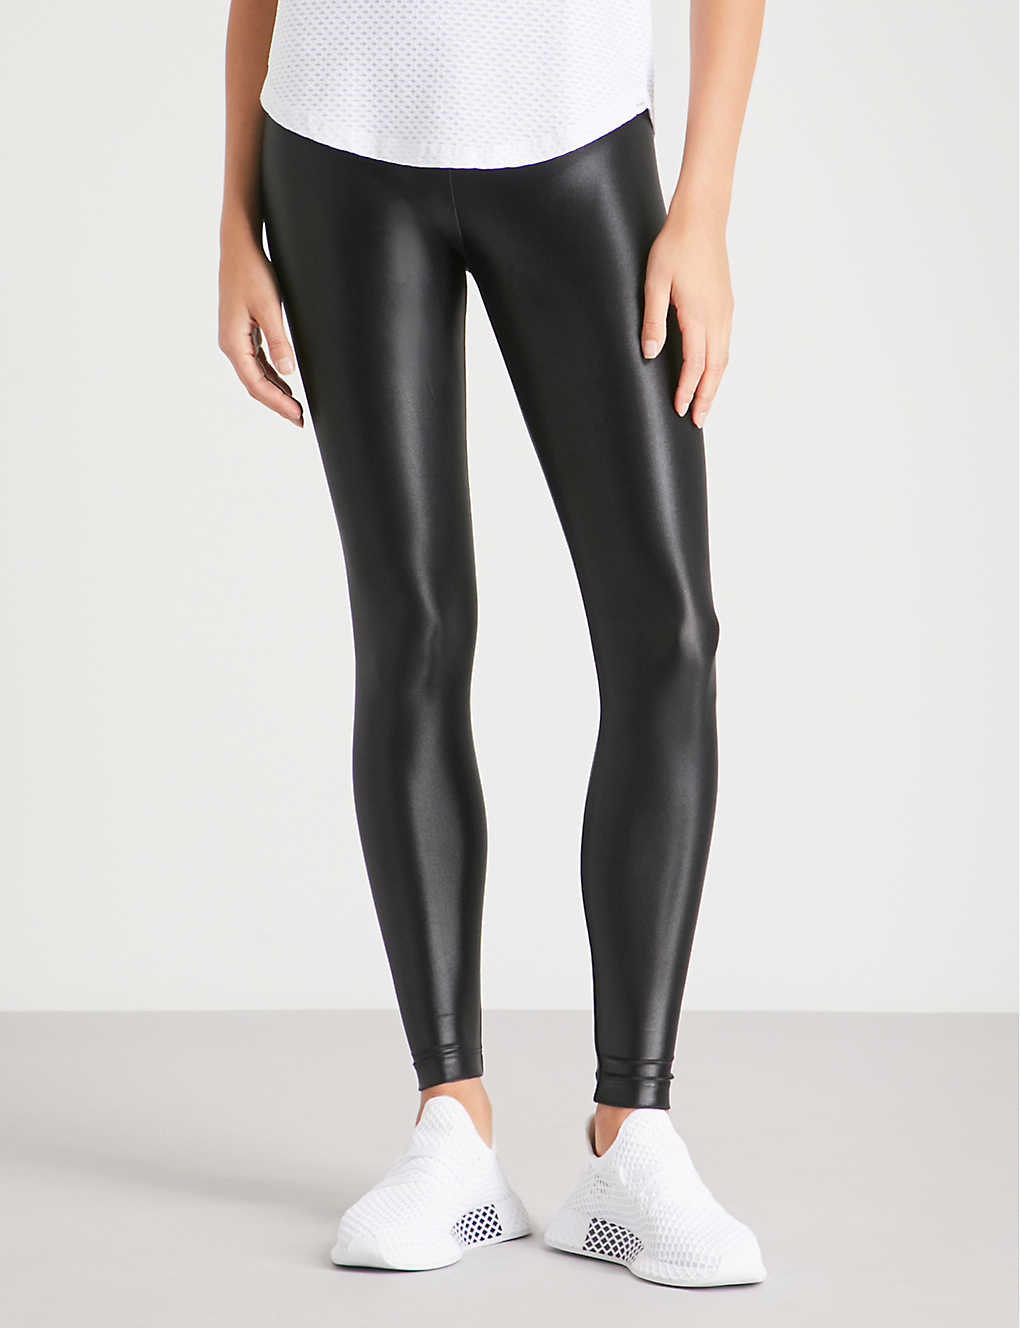 KORAL: Lustrous high-shine leggings